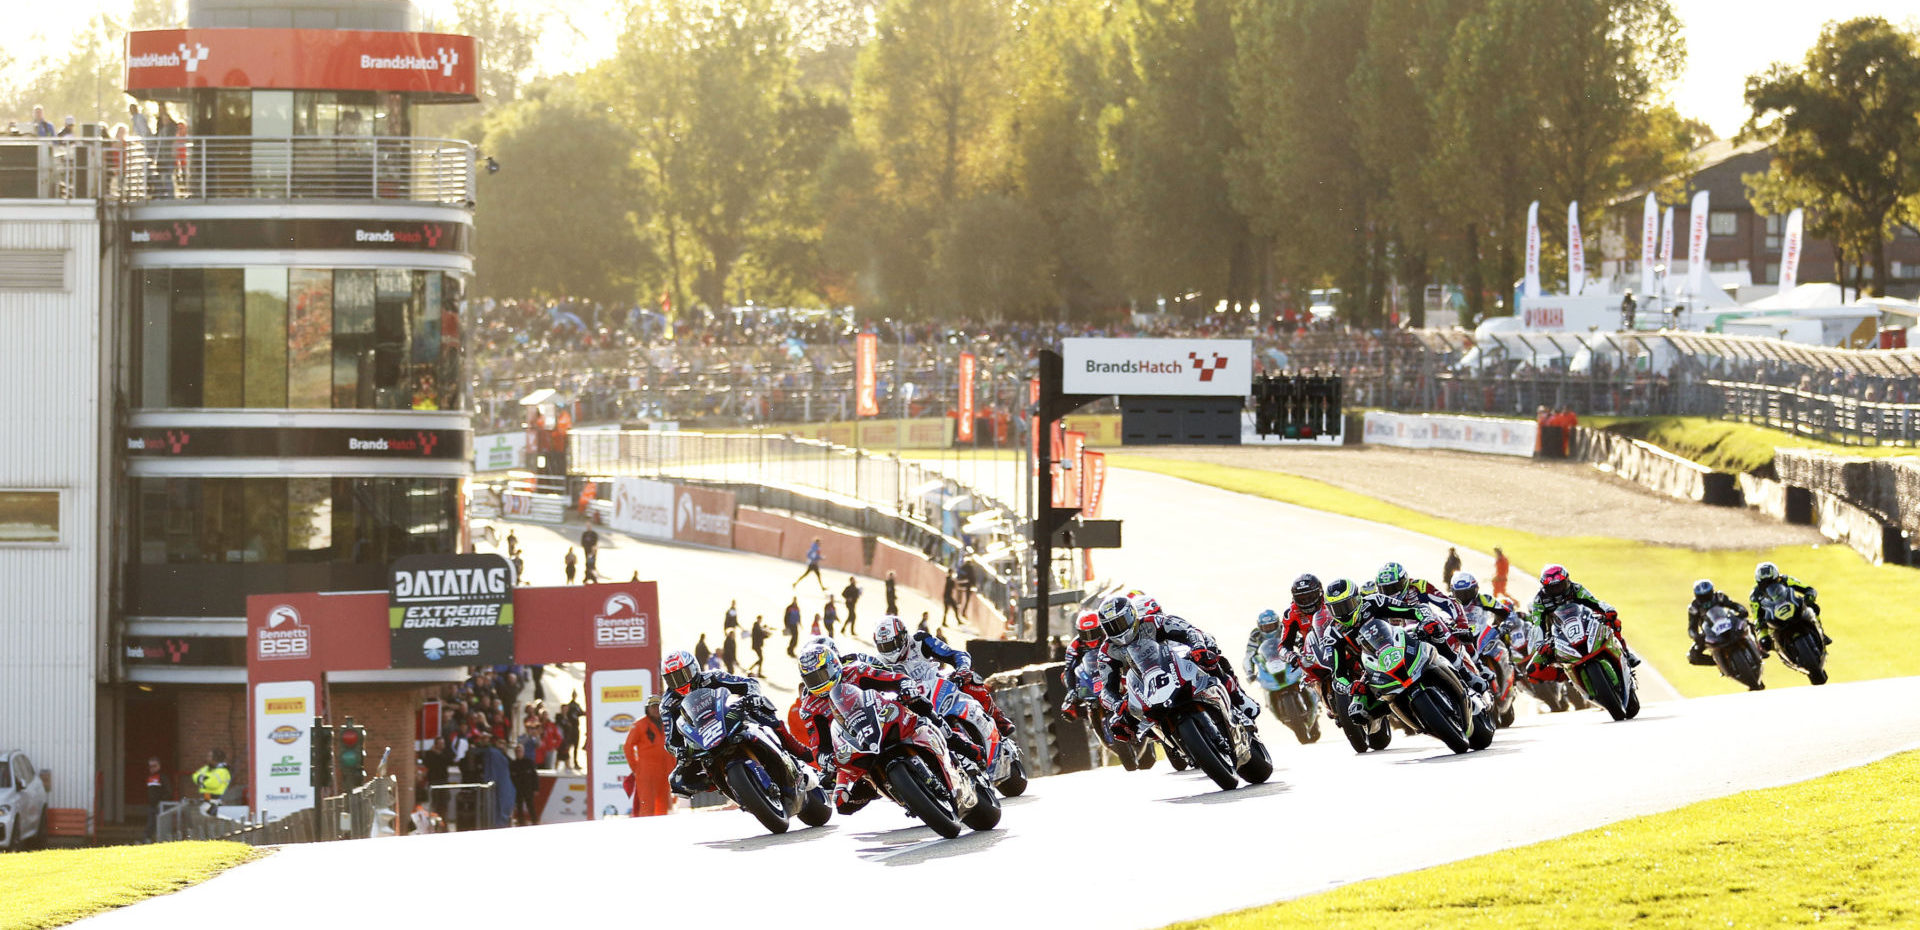 The start of British Superbike Race One at Brands Hatch. Photo courtesy of MotorSport Vision Racing.